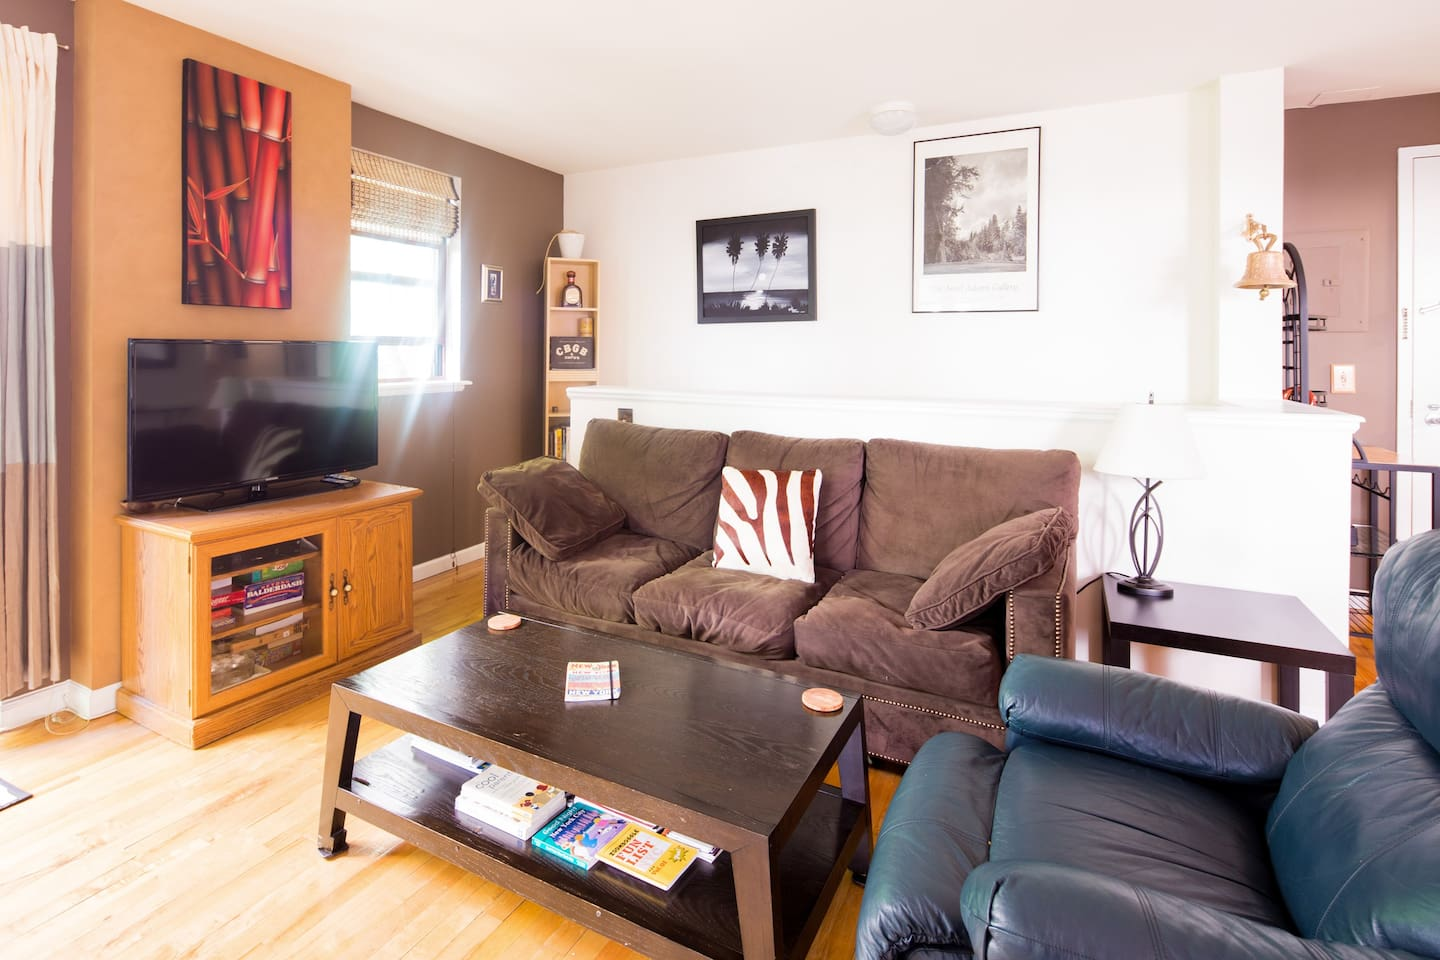 Welcome! Large 1 BR private apartment, sofa pulls out, comfortably sleeping 4 people.